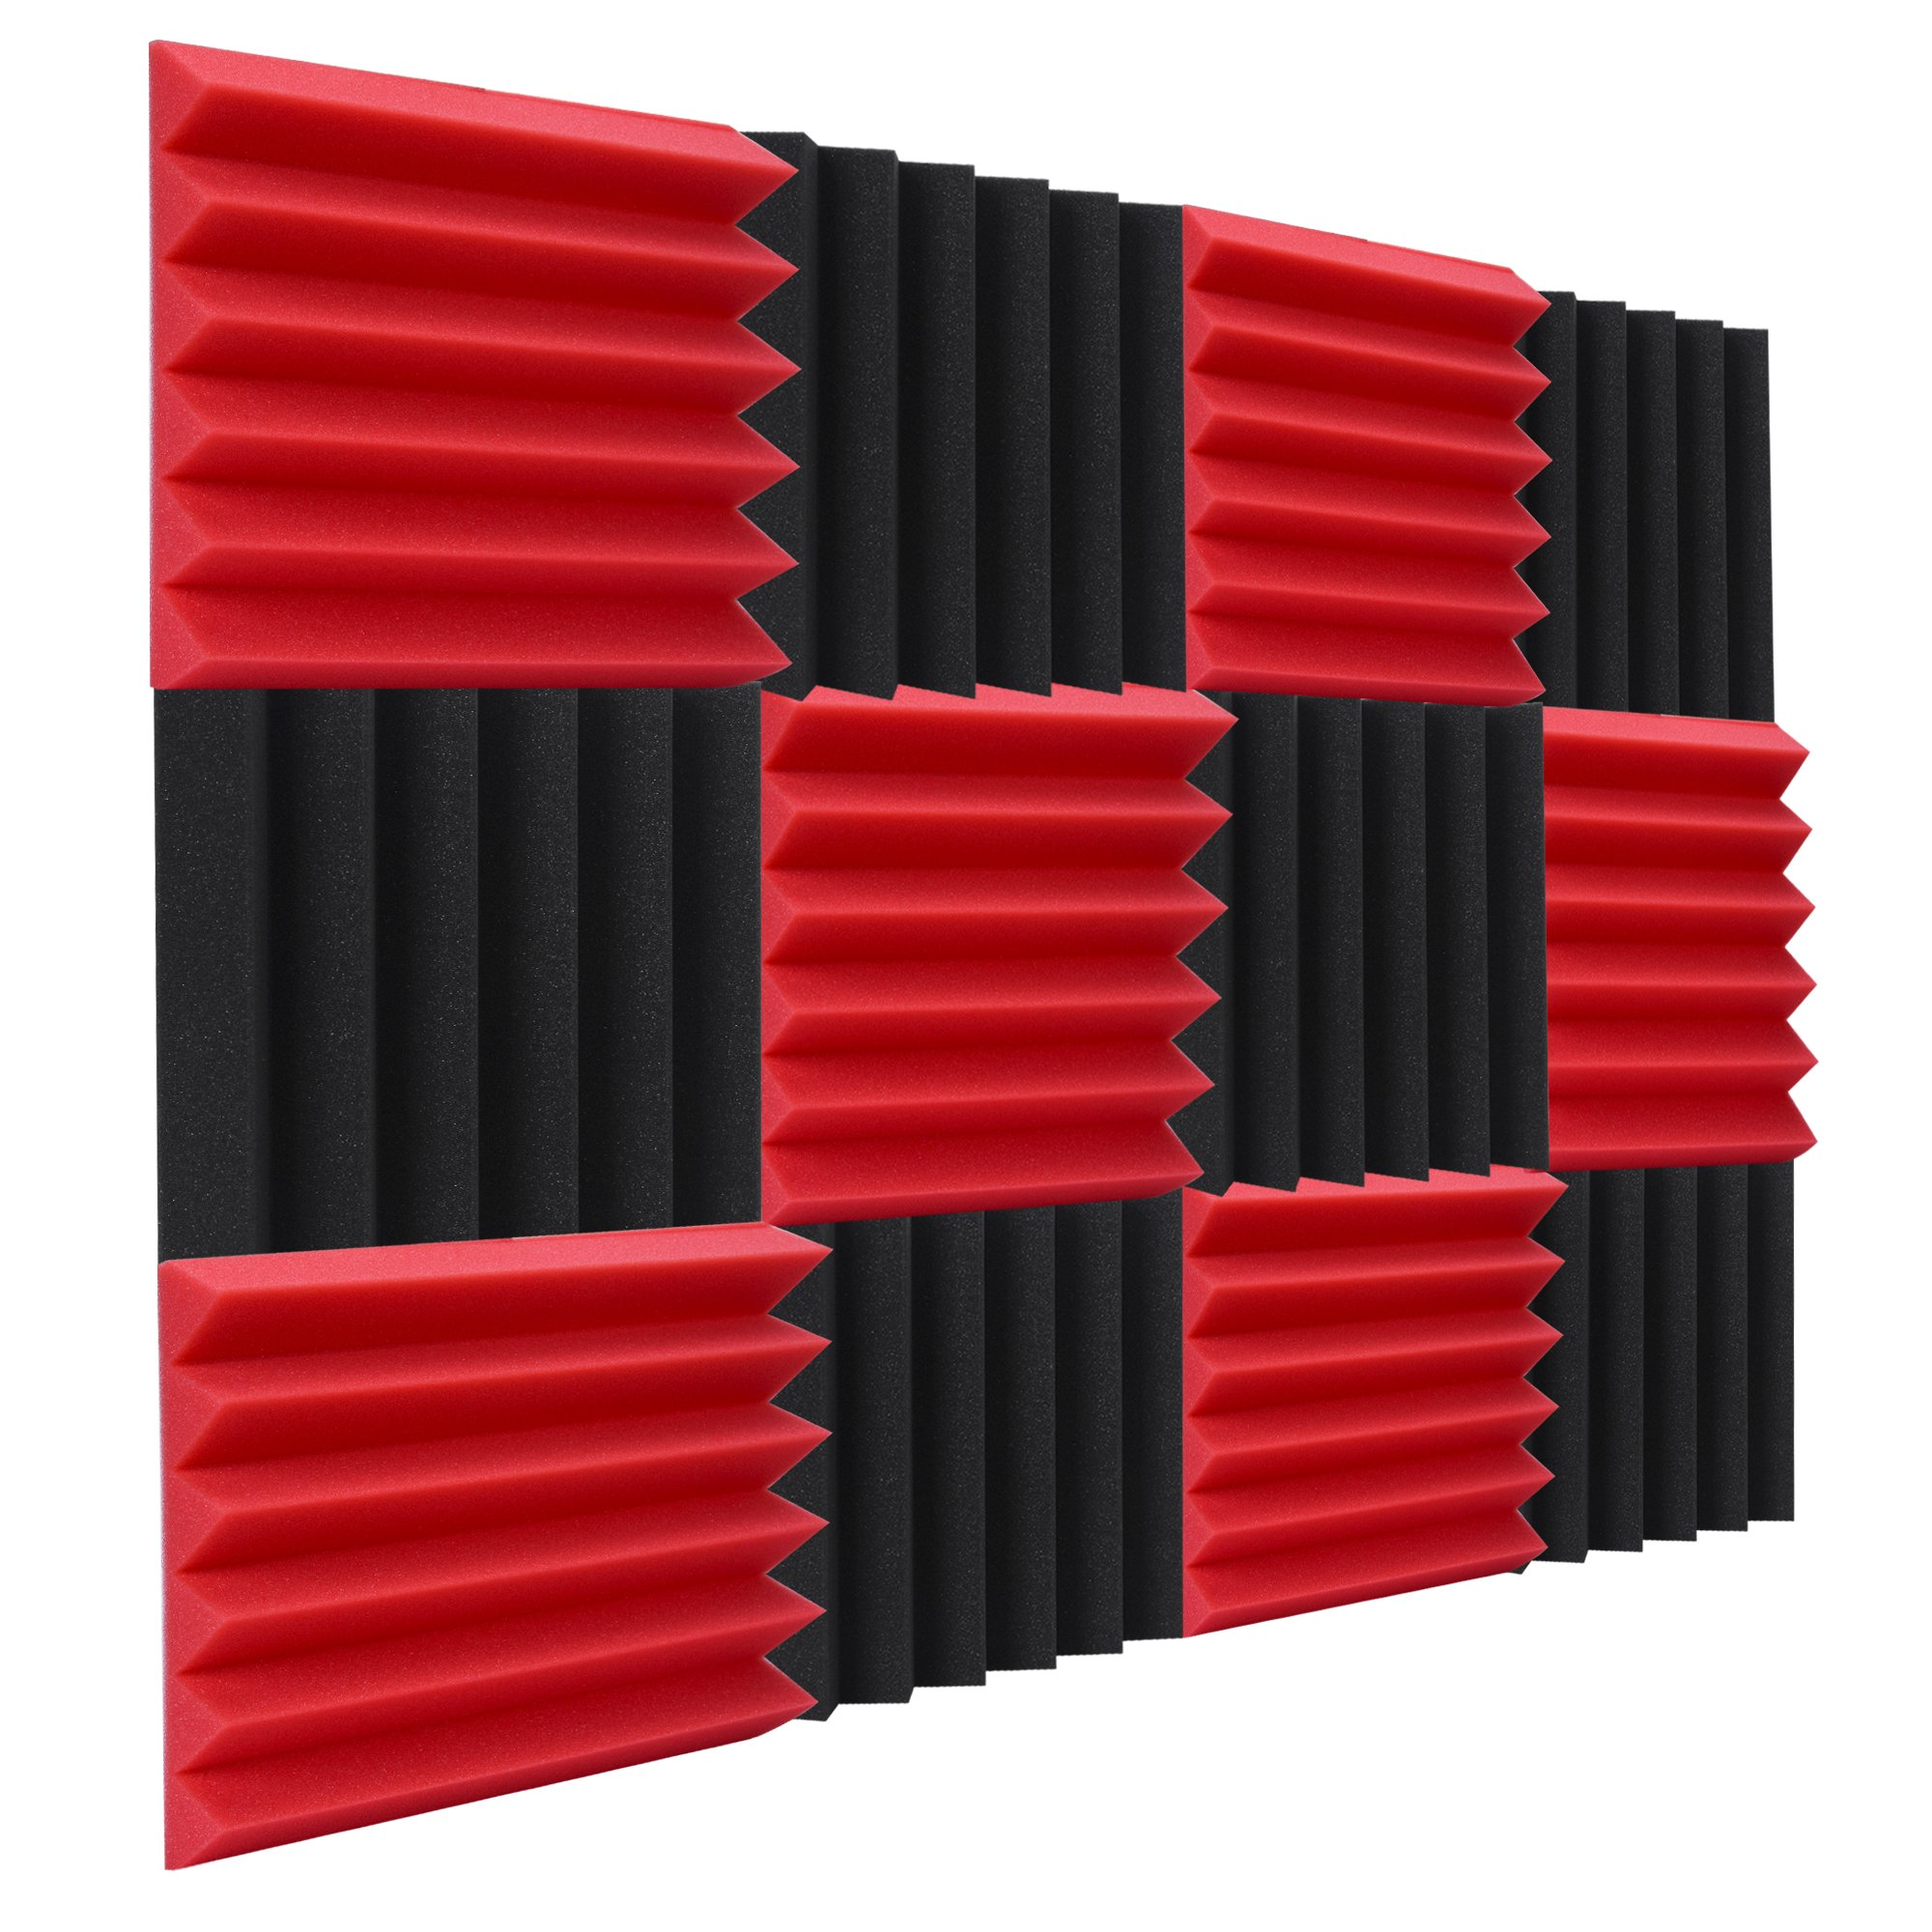 "Double Thick Studio Acoustic Wedge Foam Panels 12 Pk of 12""x12""x2"" (Red/Charcoal) by NRG Acoustic to Remove Noise, Enhance Sound. Wall Foam Panels, Sound Proof Padding for Studios Vloggers, and More. by byNRG"